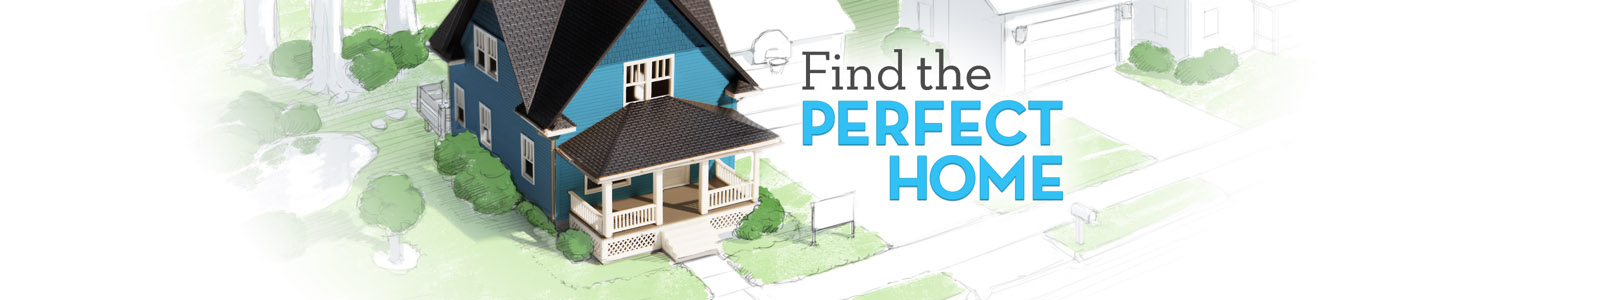 Graham beer visual designer illustrator for Find the perfect house